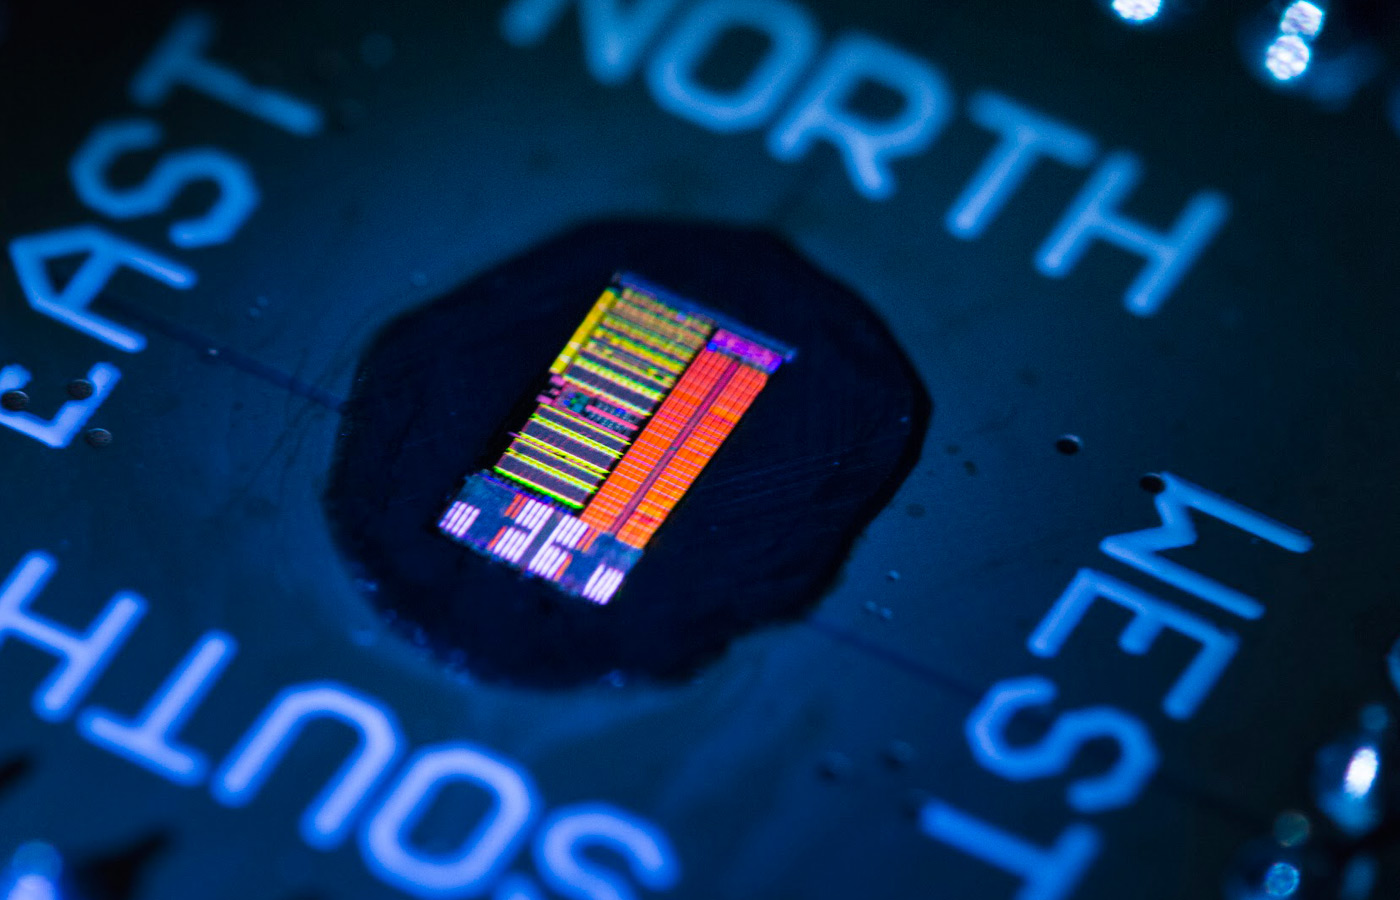 photonic-processor-university-of-colorado 600